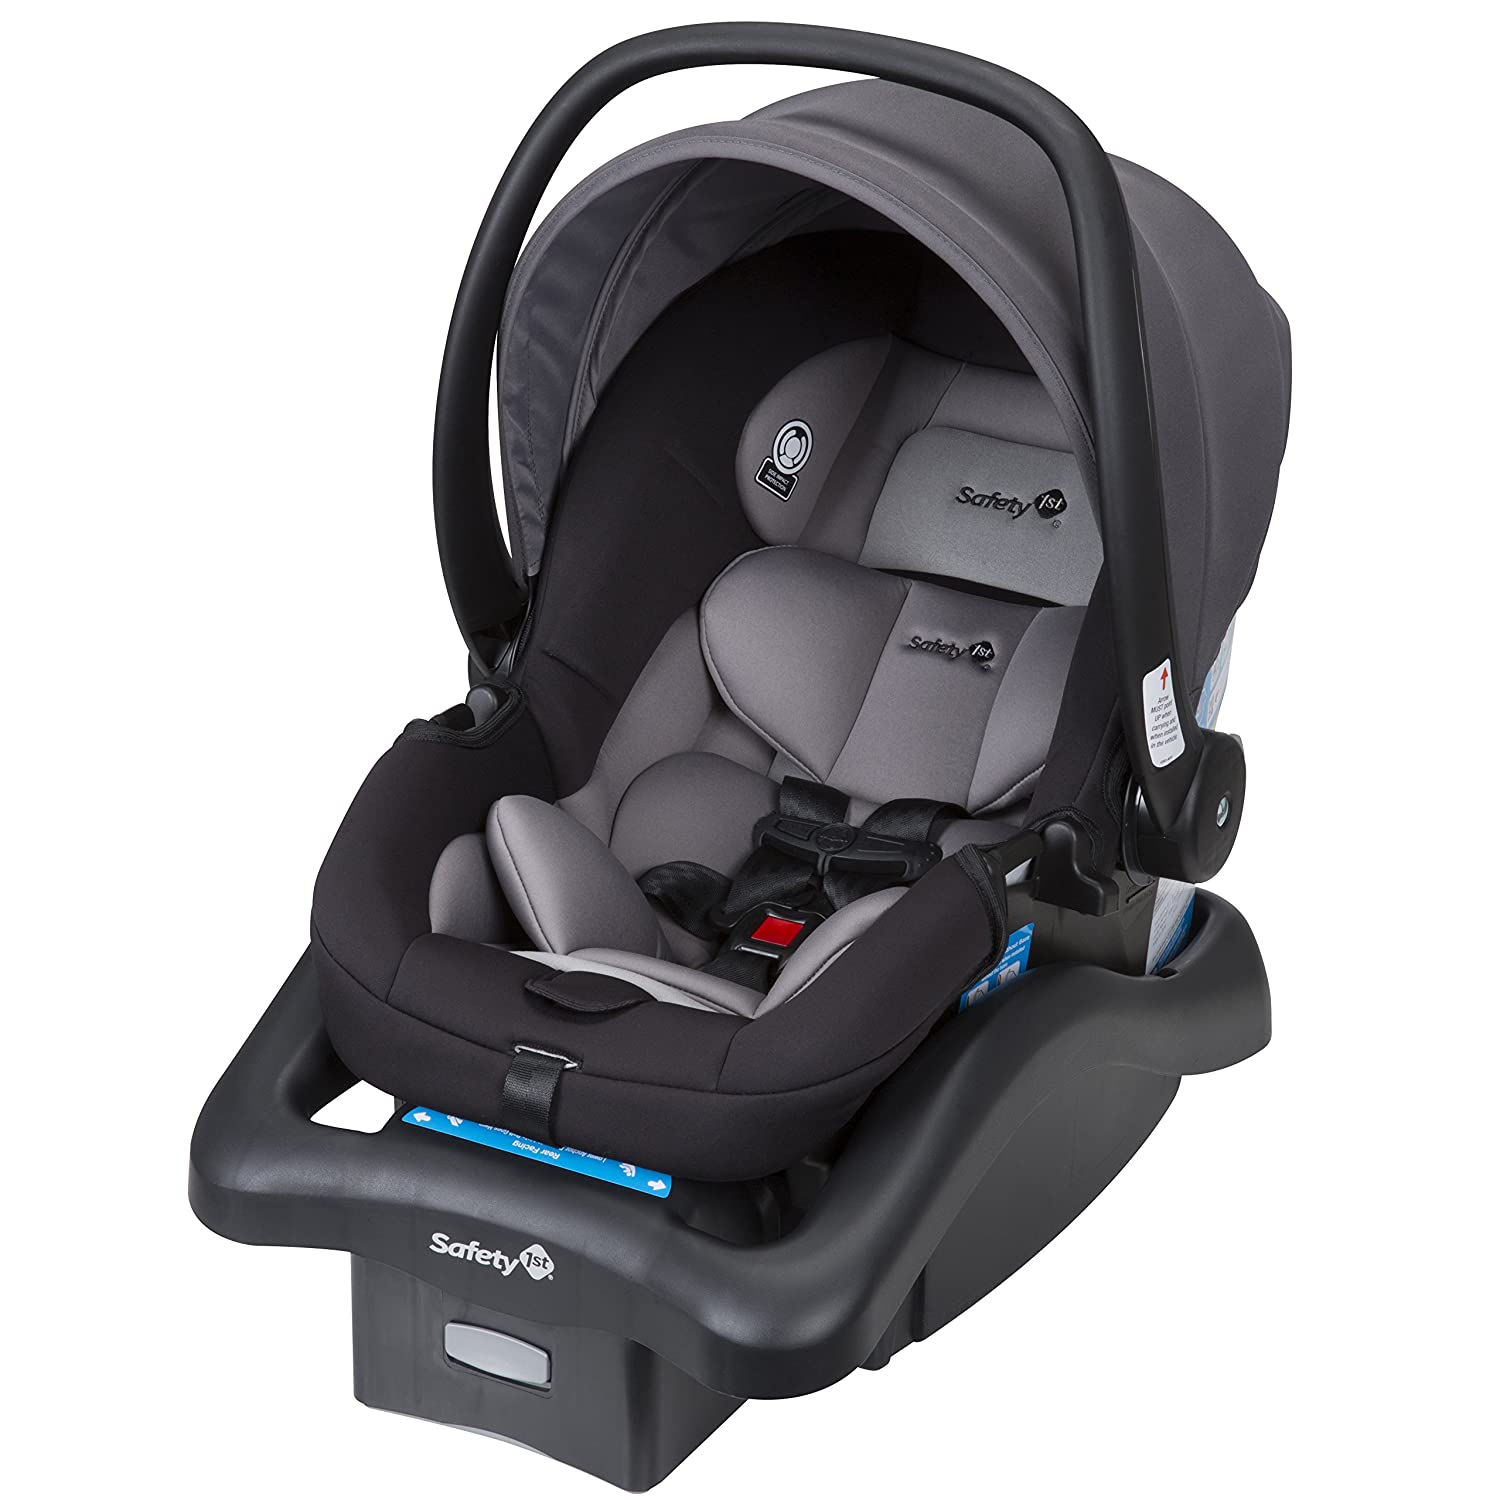 Safety 1st onboard 35 LT Infant Car Seat